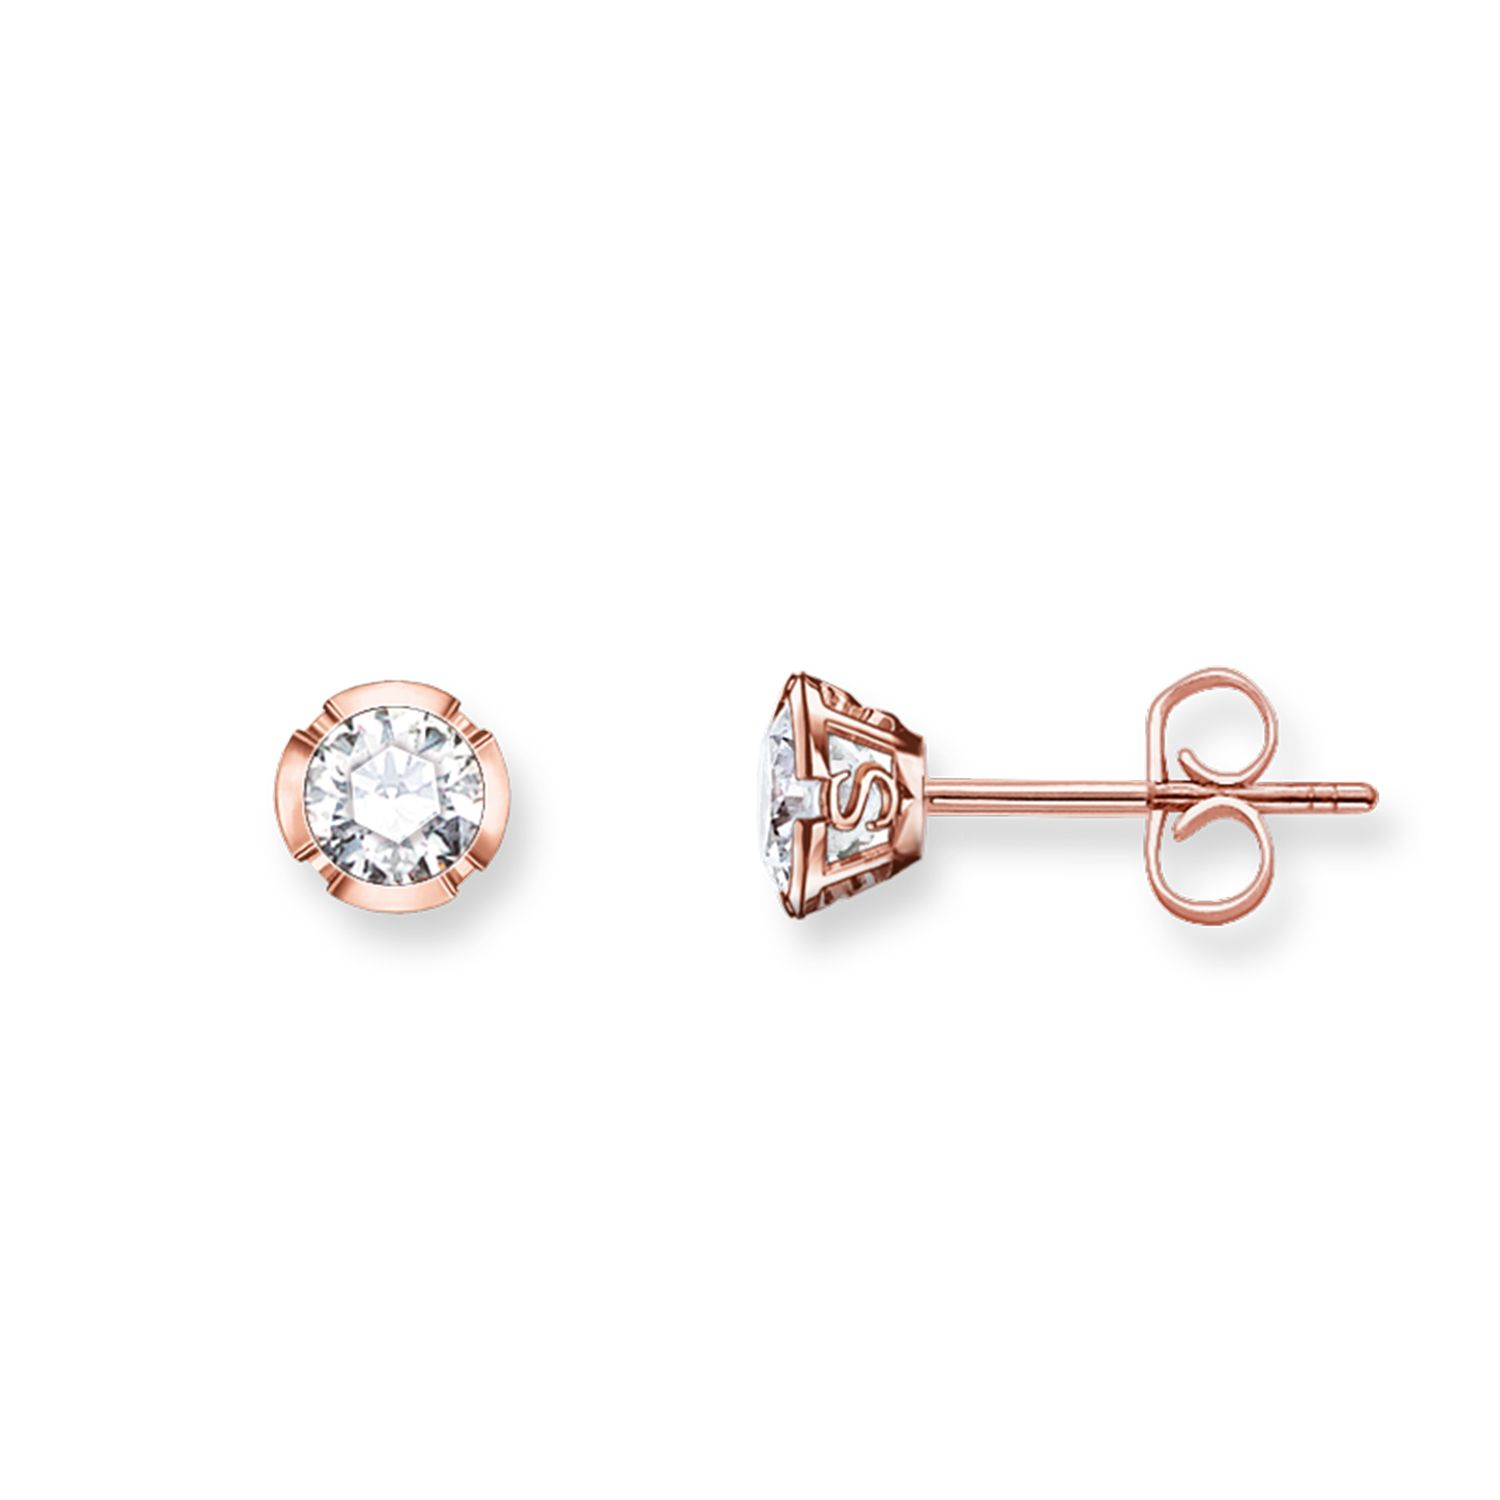 Thomas Sabo Glam & soul ts rose gold ear studs, White